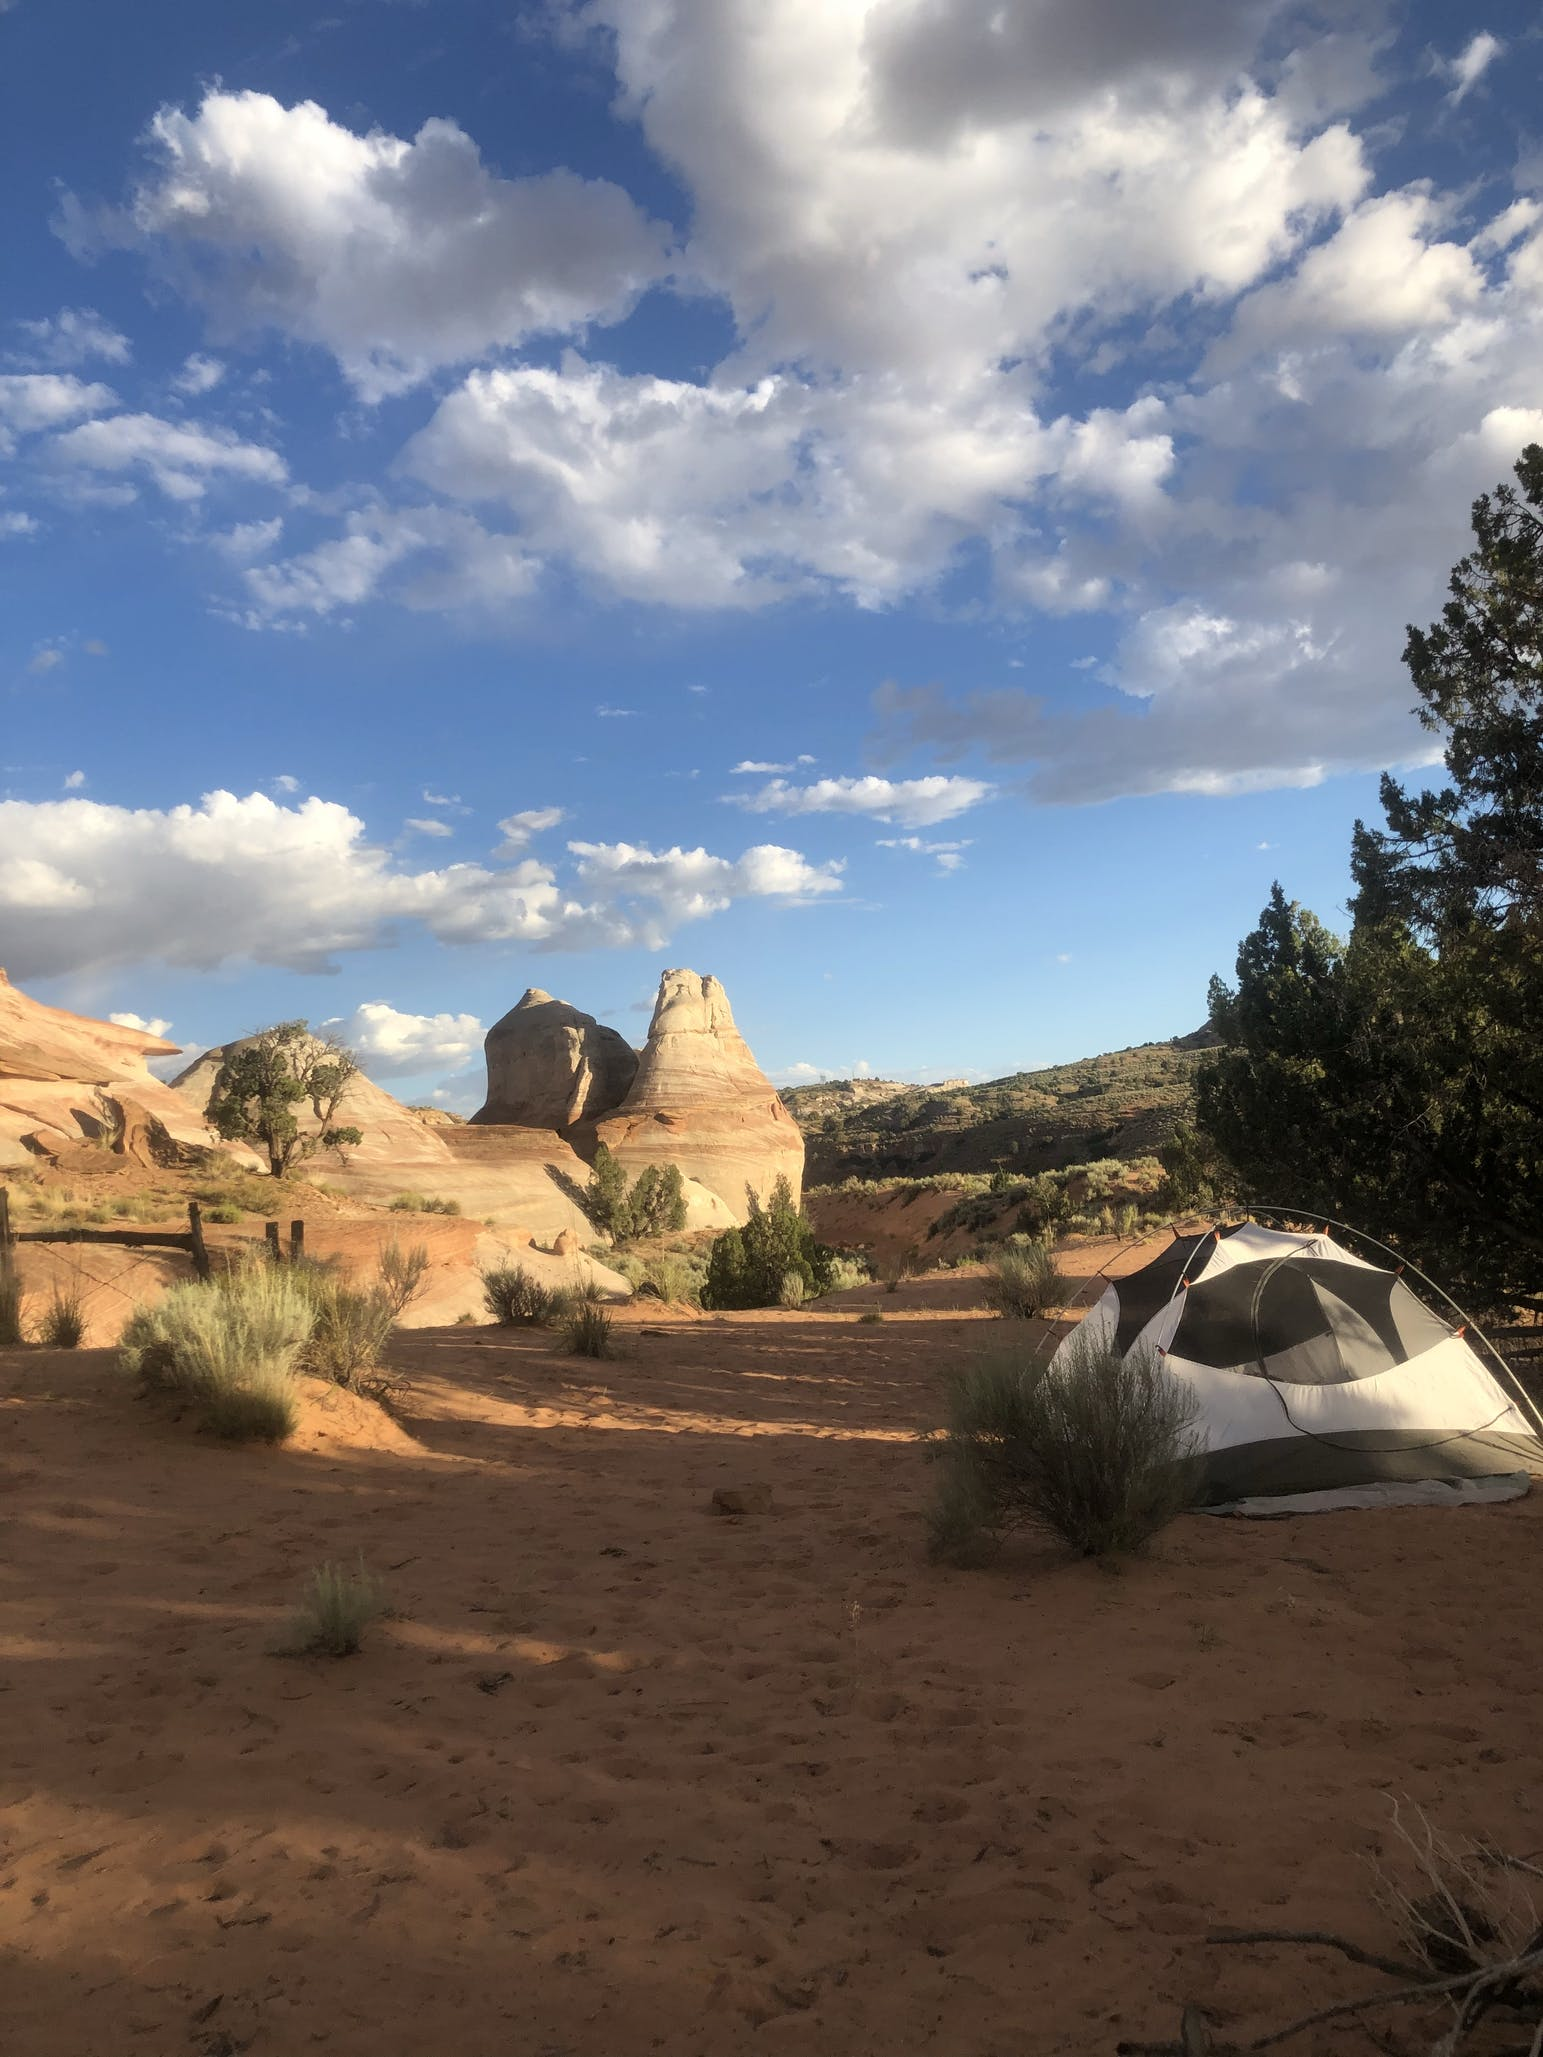 Tent beside rock formations at a desert campsite.